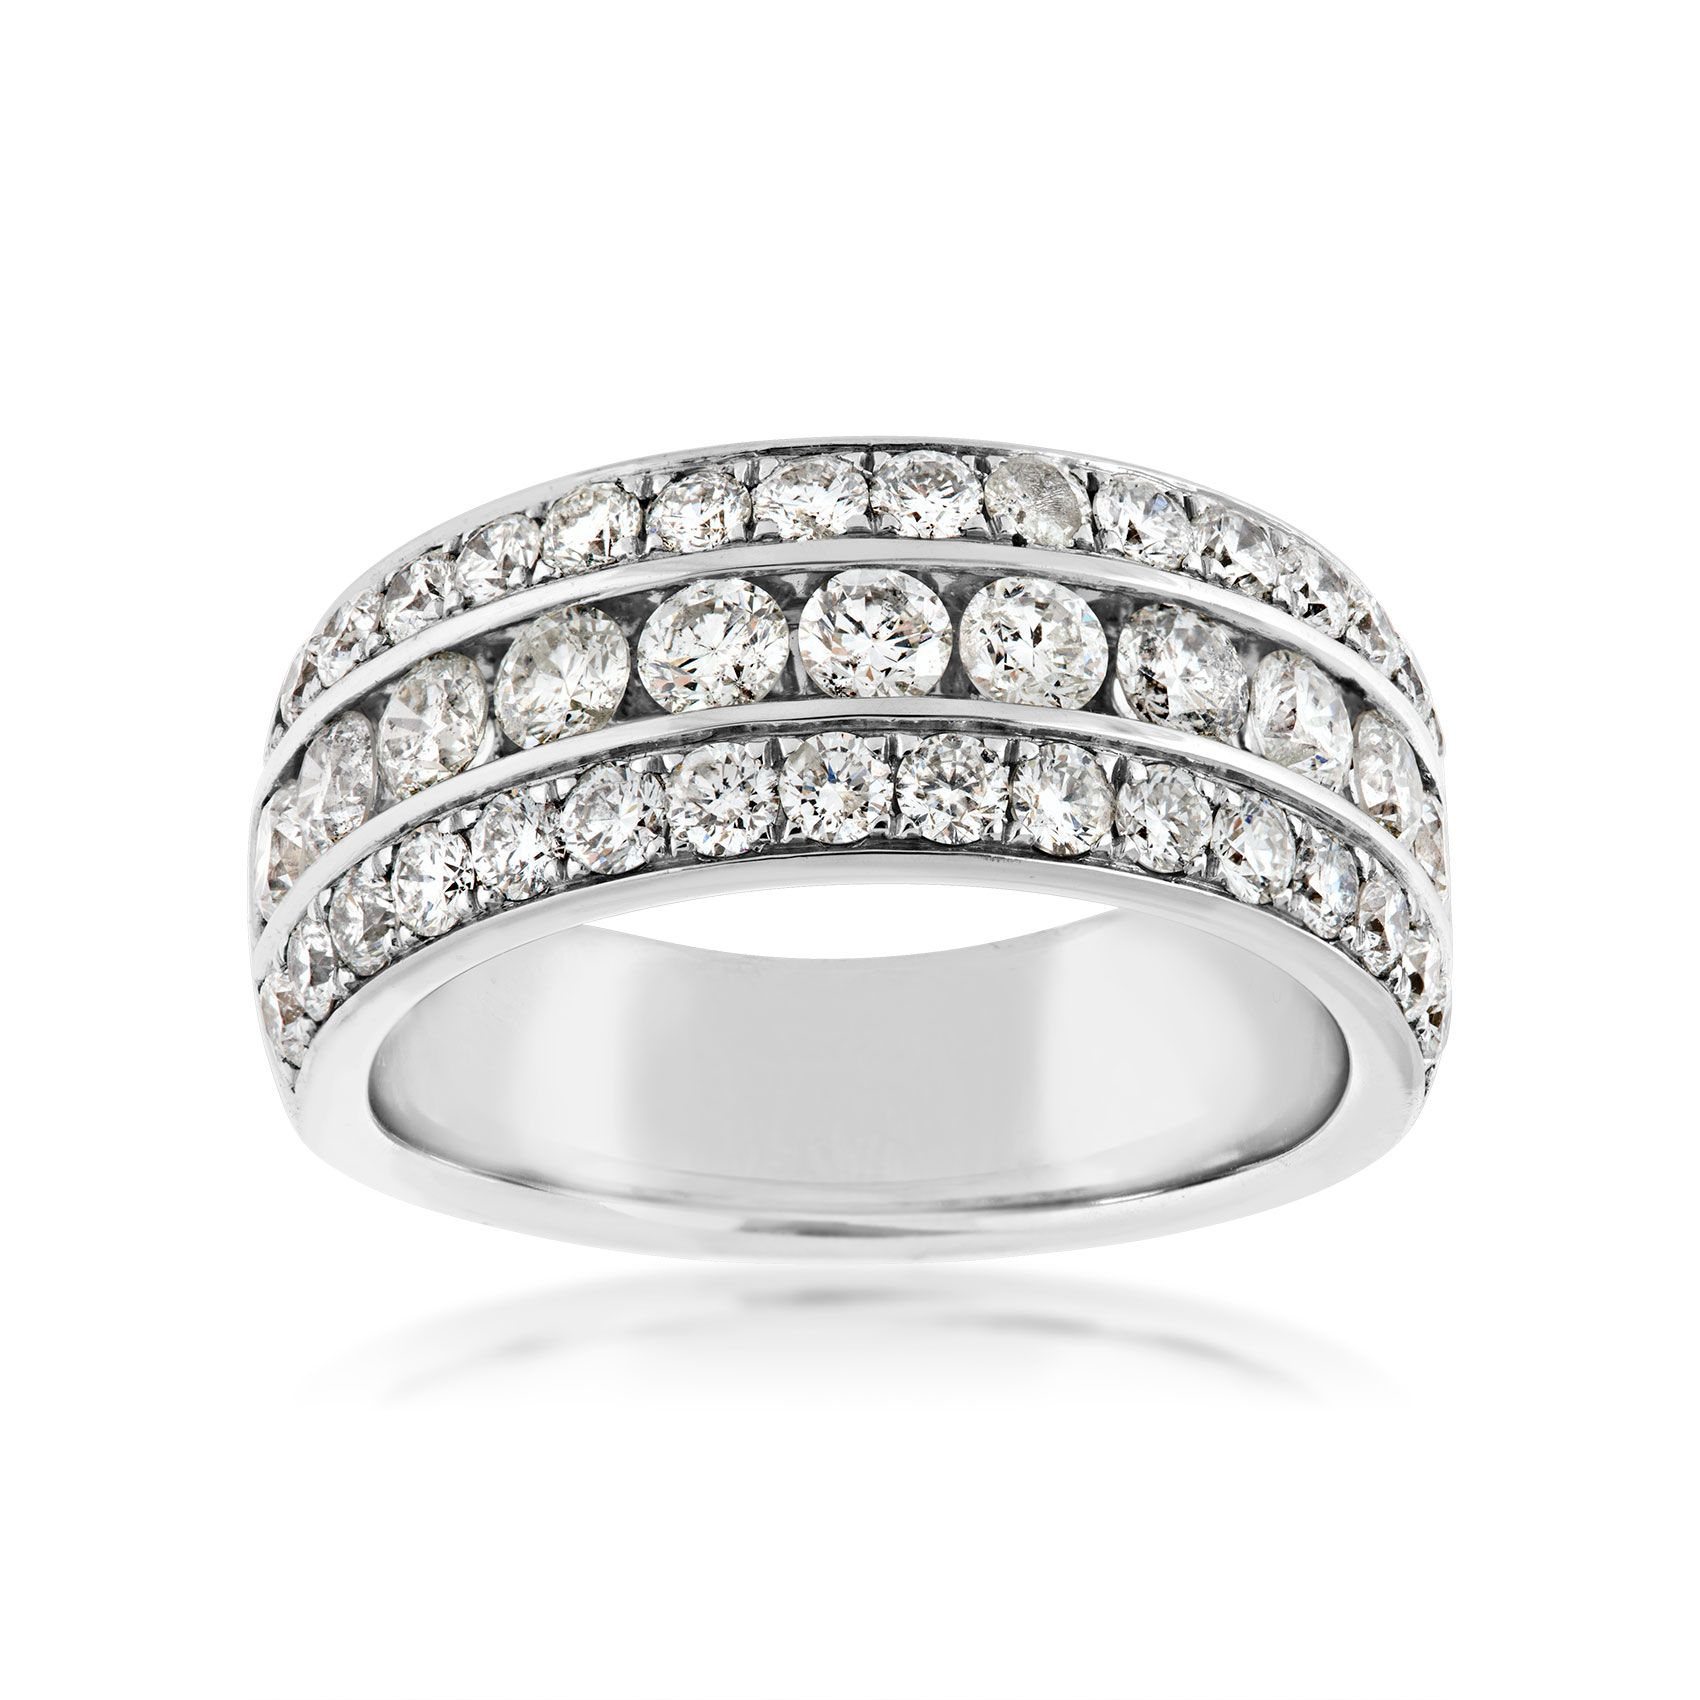 2 Ct. Tw. Diamond 3 Row Anniversary Ring In 14K White Gold – Jm2649 Rg14W070 Inside Latest Diamond Two Row Anniversary Rings In Gold (Gallery 19 of 25)